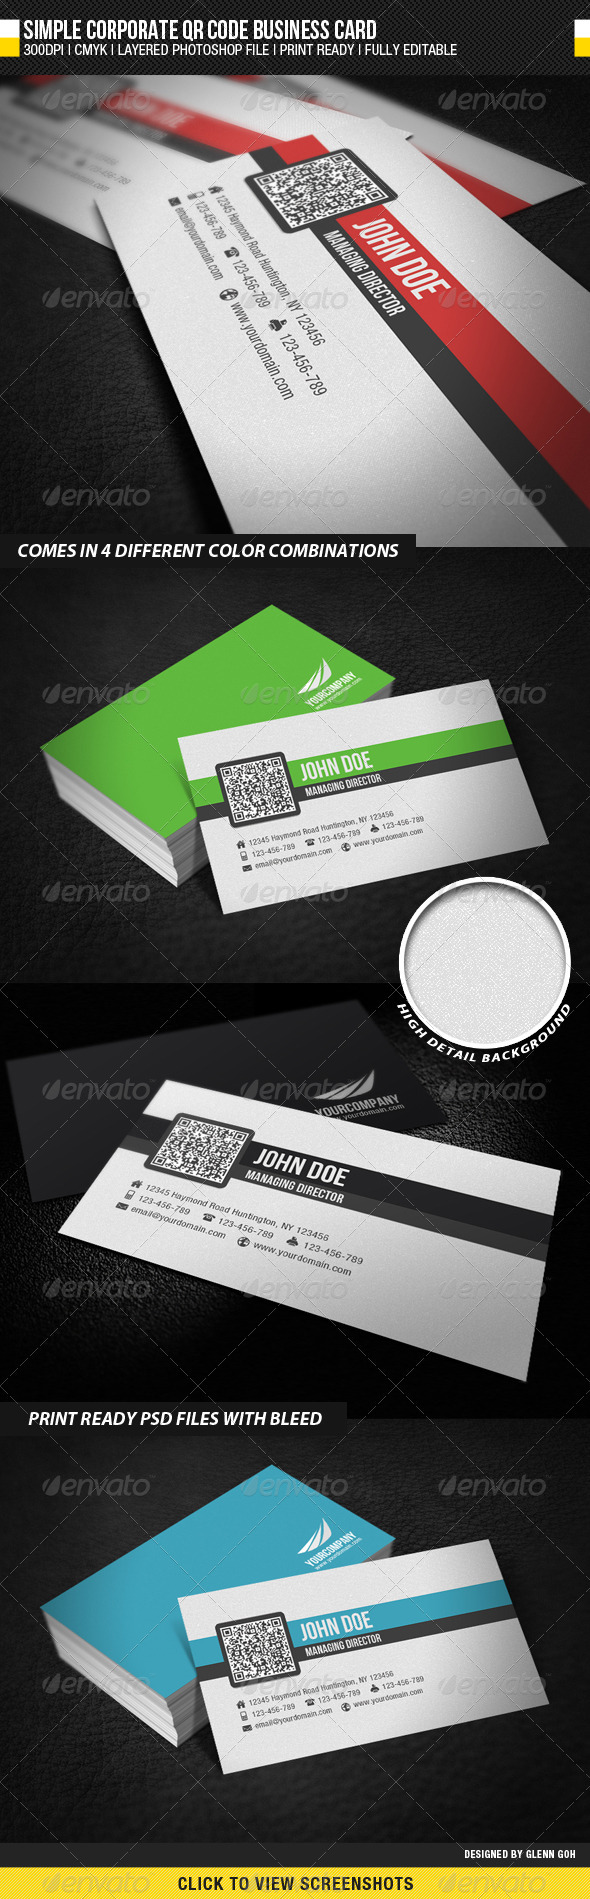 Simple Corporate QR Code Business Card - Business Cards Print Templates